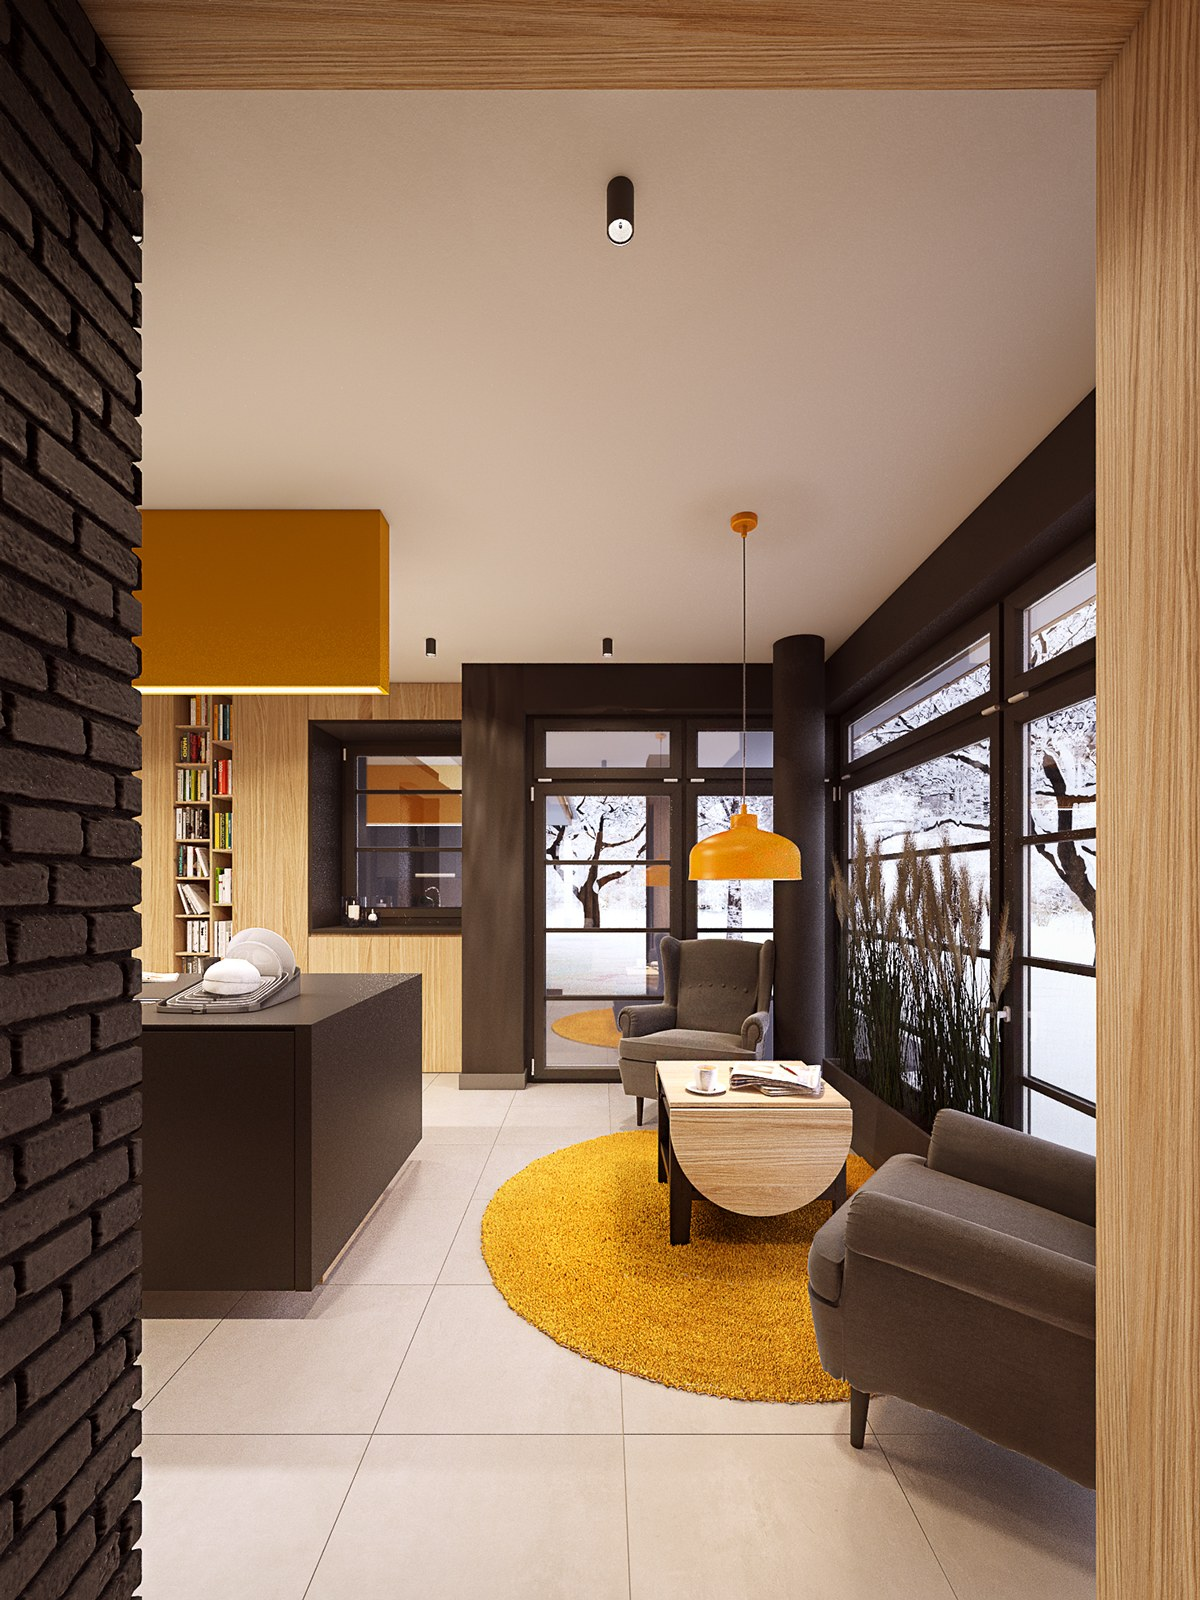 A seductive home with lush colors and double baths